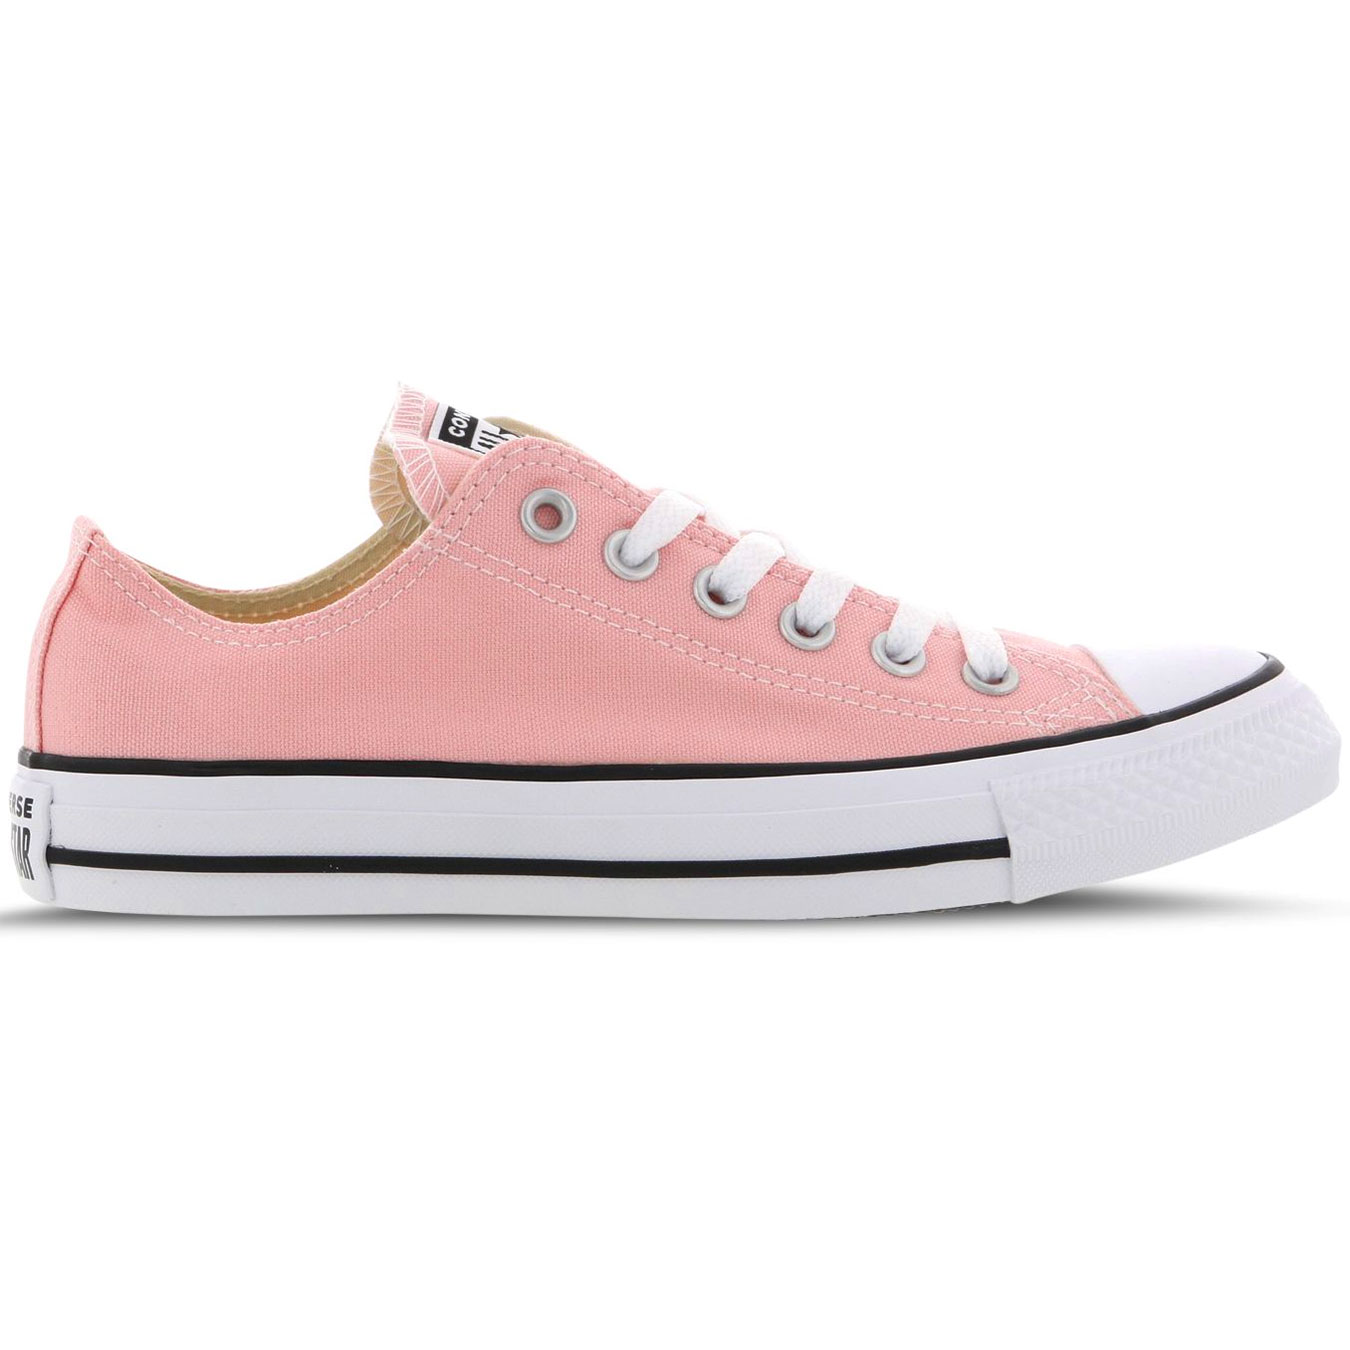 Converse CT AS OX Chuck Taylor All Star pink weiß 164936C